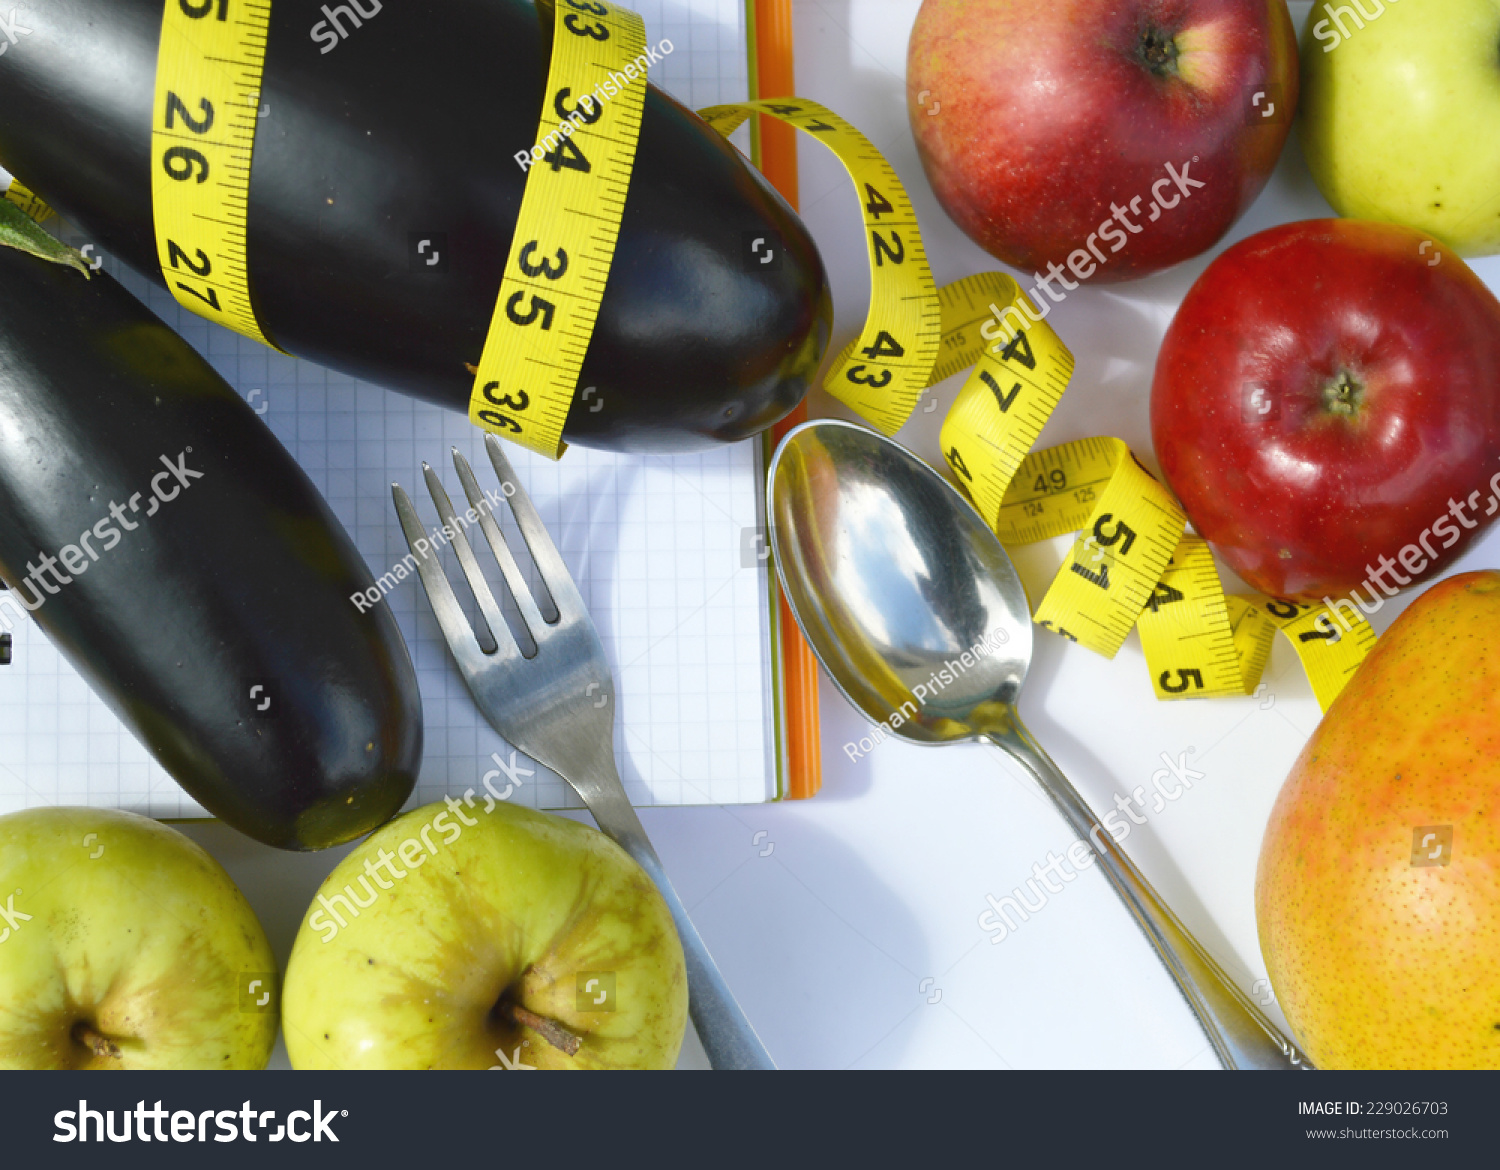 Astounding Vegetables Fruits Weight Loss Measuring Tape Stock Photo Download Free Architecture Designs Scobabritishbridgeorg